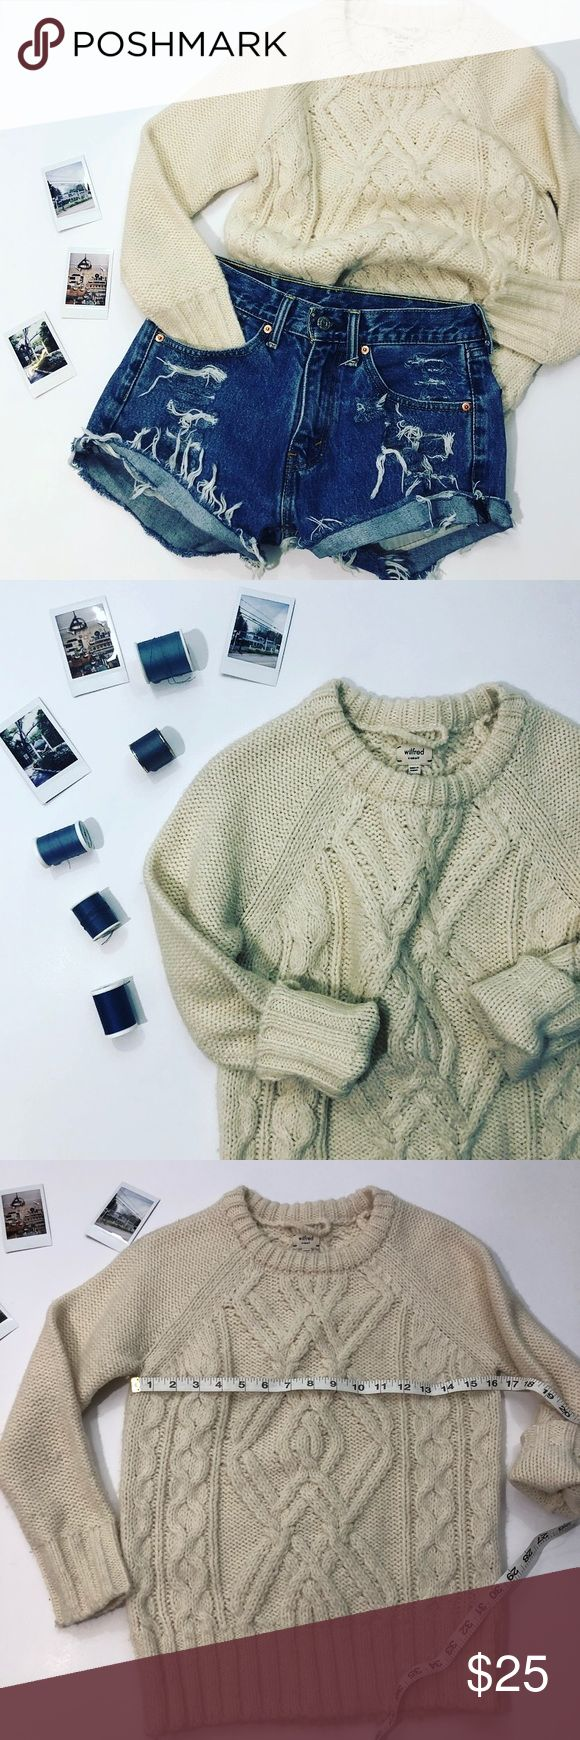 Wilfred cream cable knit sweater size xs Wilfred cream cable knit sweater size xs In good condition slight pilling  Yes yes I know winter is almost over but that doesn't mean you cant pair this with those vintage high waisted Levi shorts for that epic beach bonfire look ✨  Some stretch in sweater fits true to size  Any ? Please ask  I would love to accept your offer Wilfred Sweaters Crew & Scoop Necks